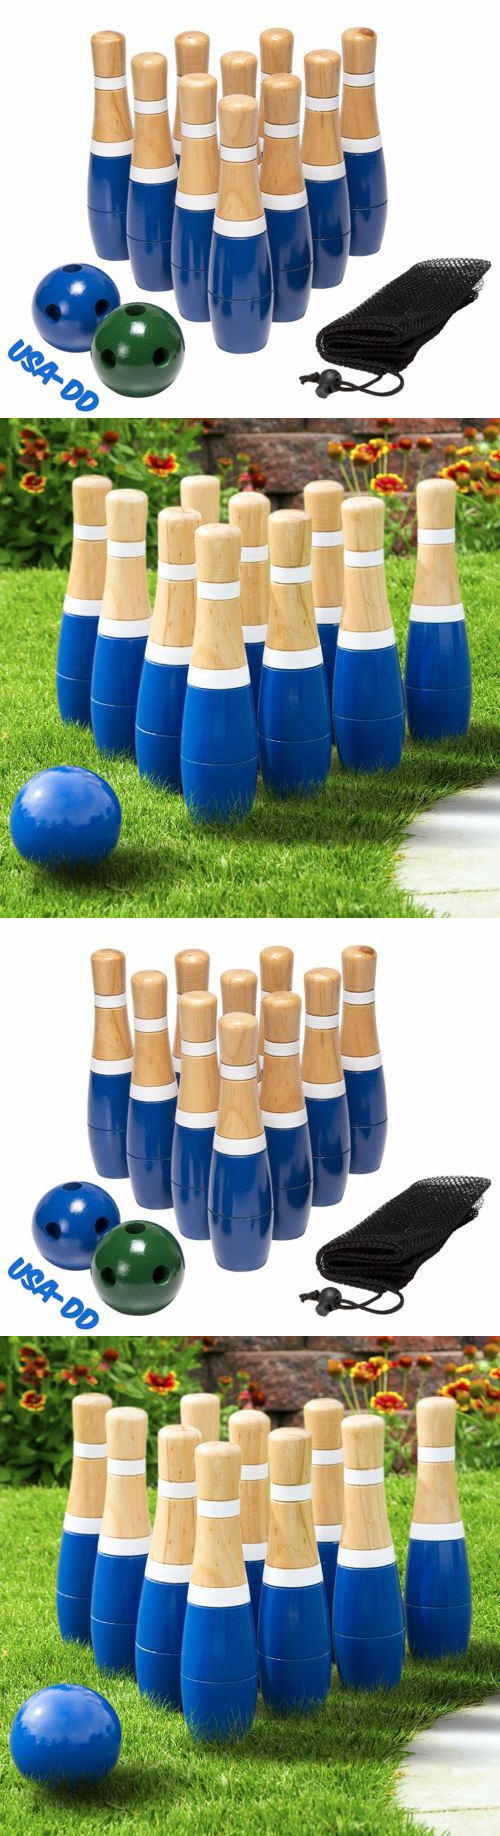 other backyard games 159081 wooden lawn bowling set family yard